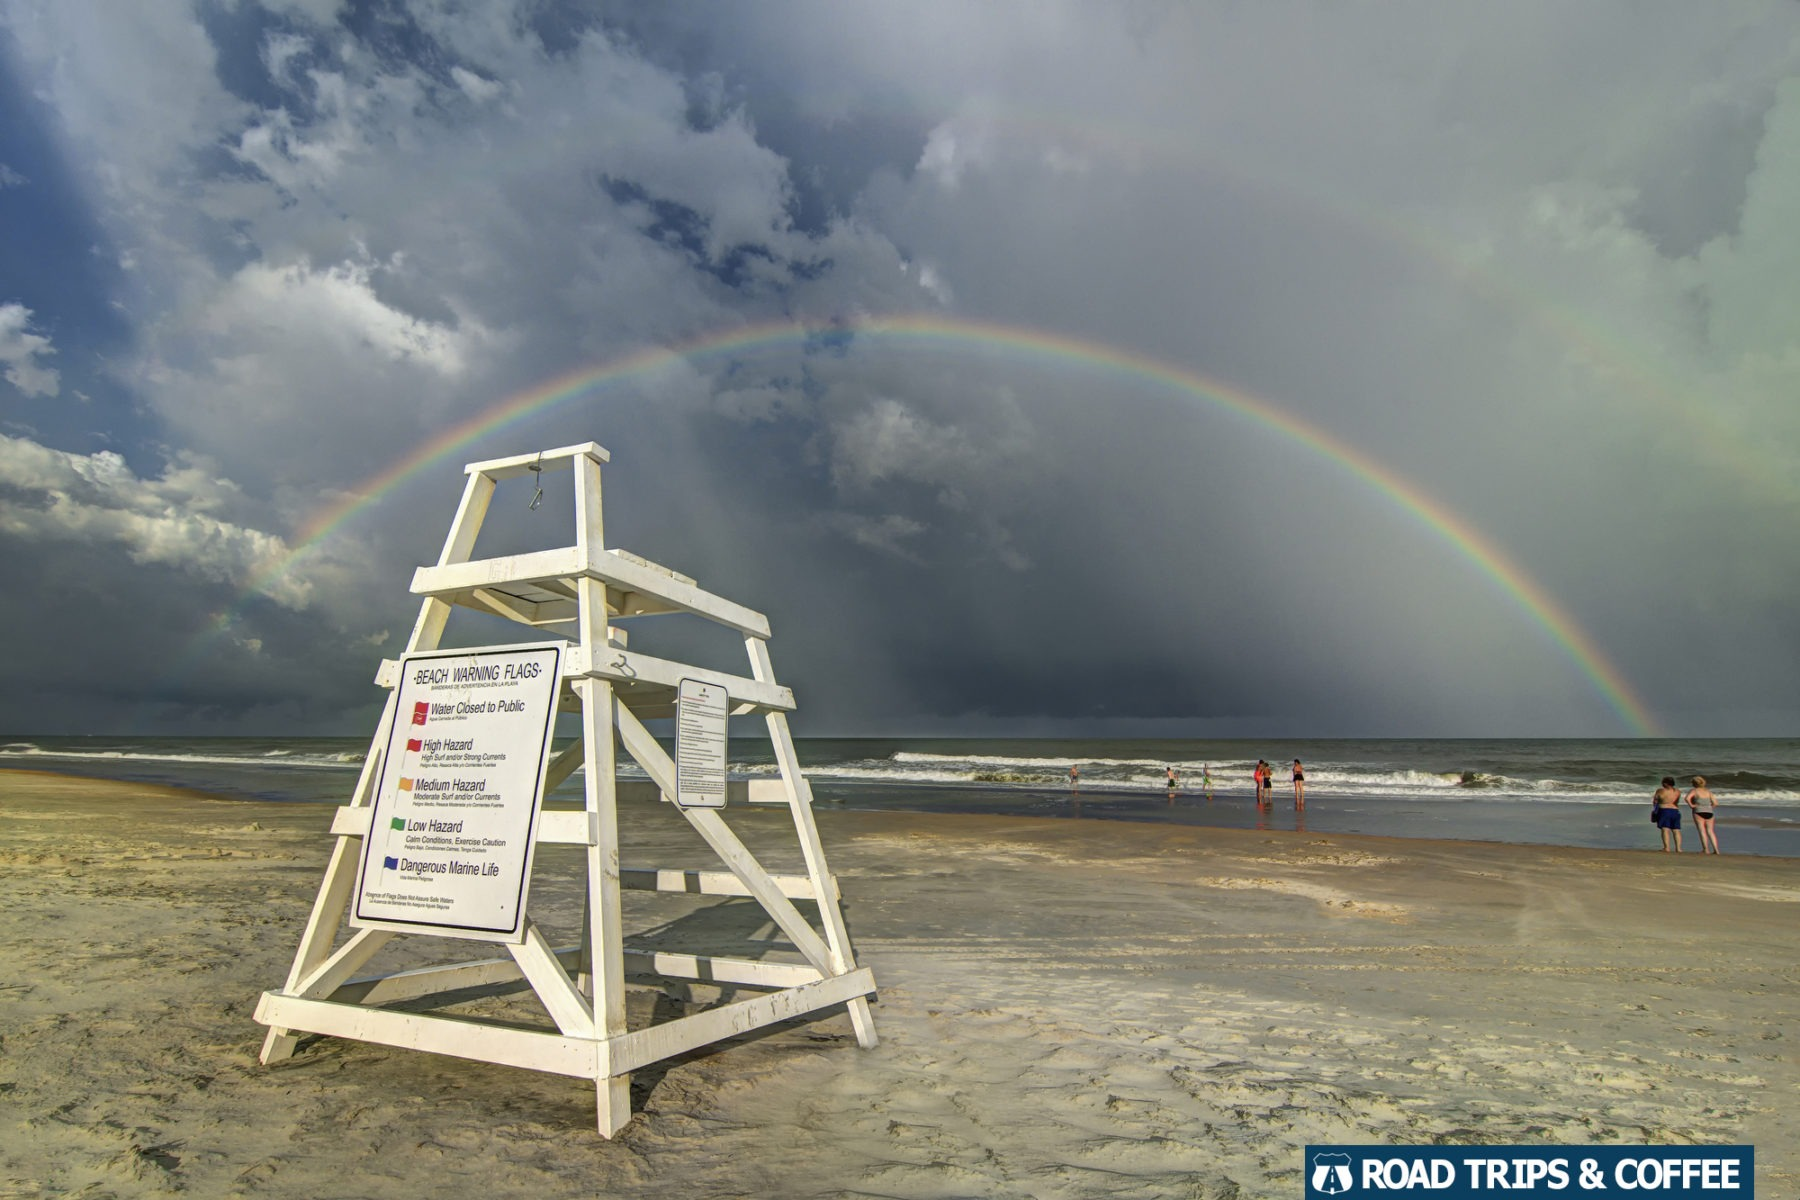 A beautiful rainbow arches over a lifeguard tower on the beach at Huntington Beach State Park in Murrells Inlet, South Carolina